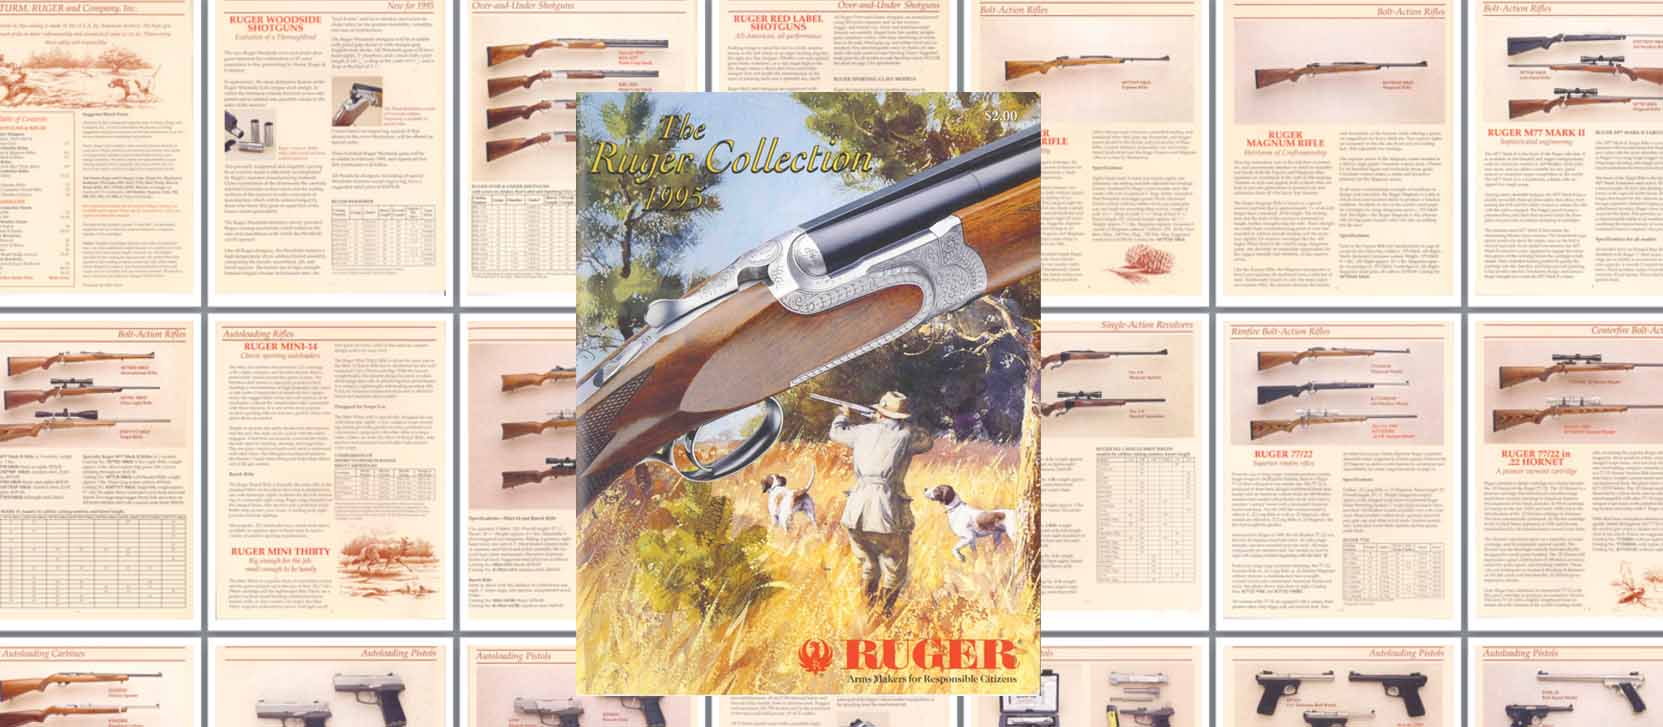 Ruger 1995 Collection Fine Firearms